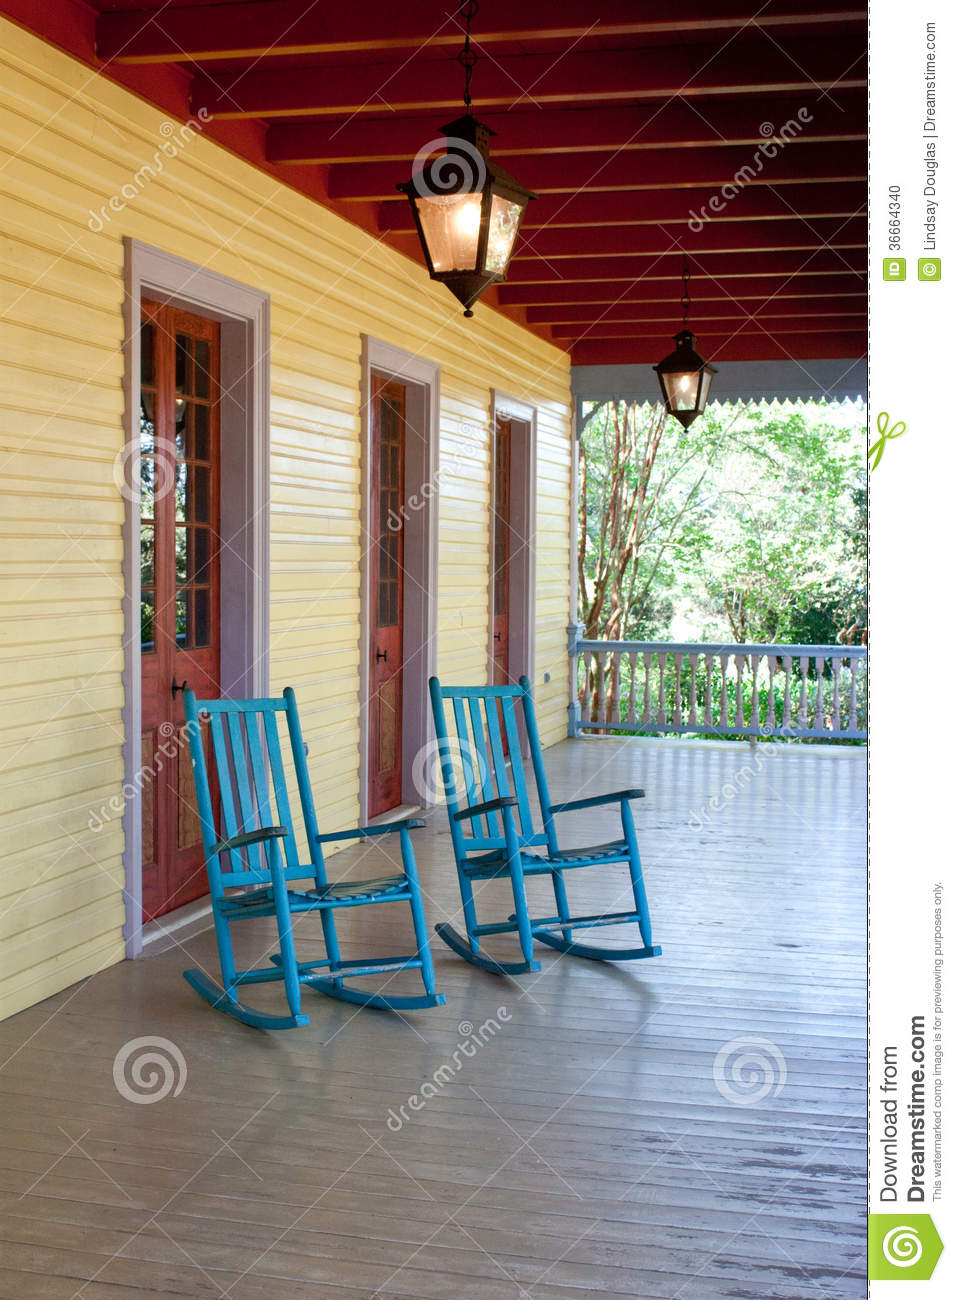 Download Two empty rocking chairs stock photo. Image of rustic - 36664340 & Two empty rocking chairs stock photo. Image of rustic - 36664340